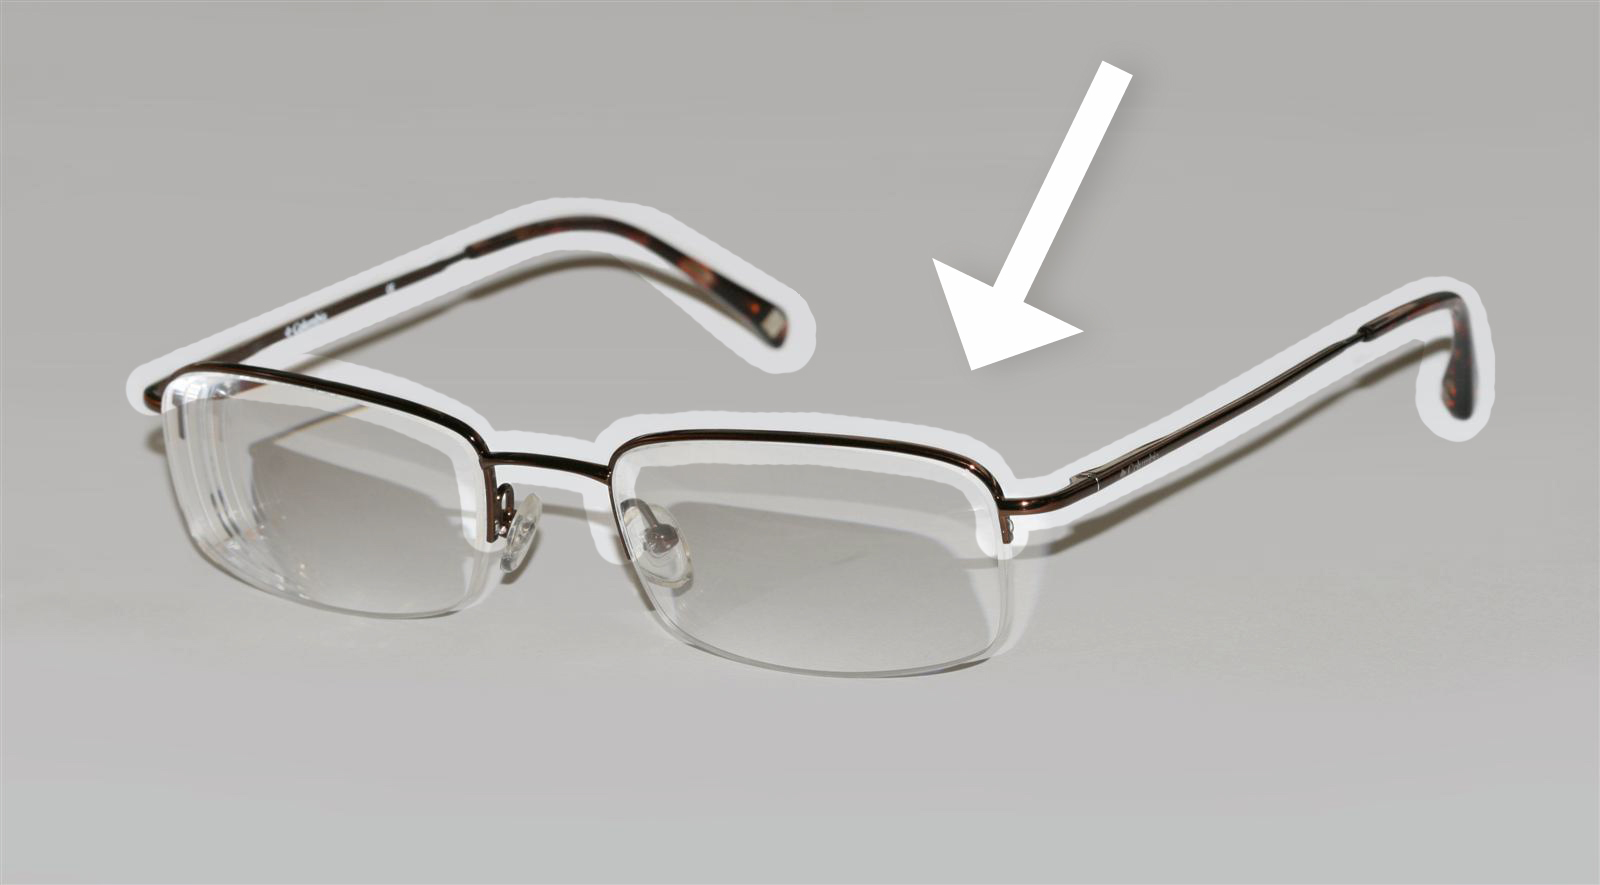 Glasses With Only Bottom Frame : File:Half rim glasses with frame highlighted.jpg ...